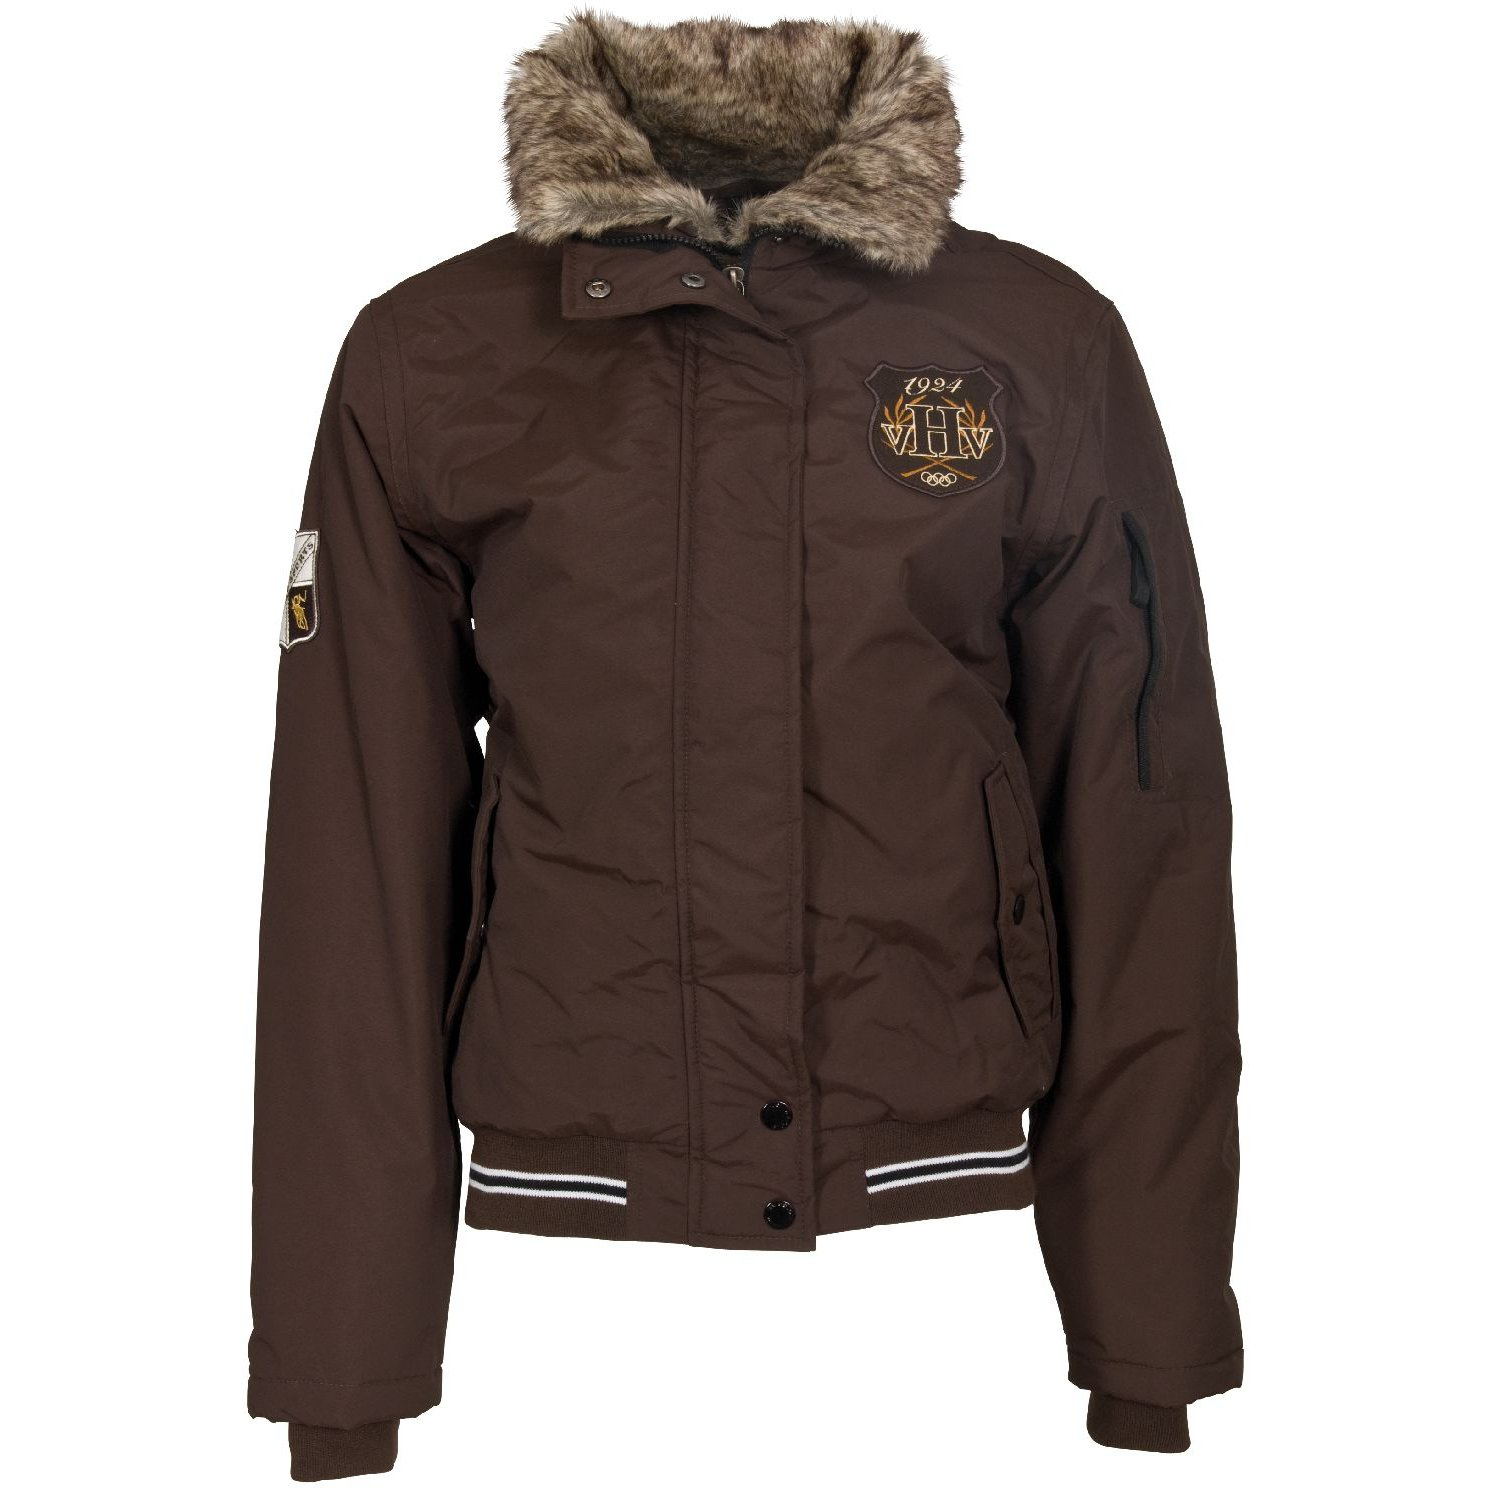 Brown Waterproof Jacket - JacketIn